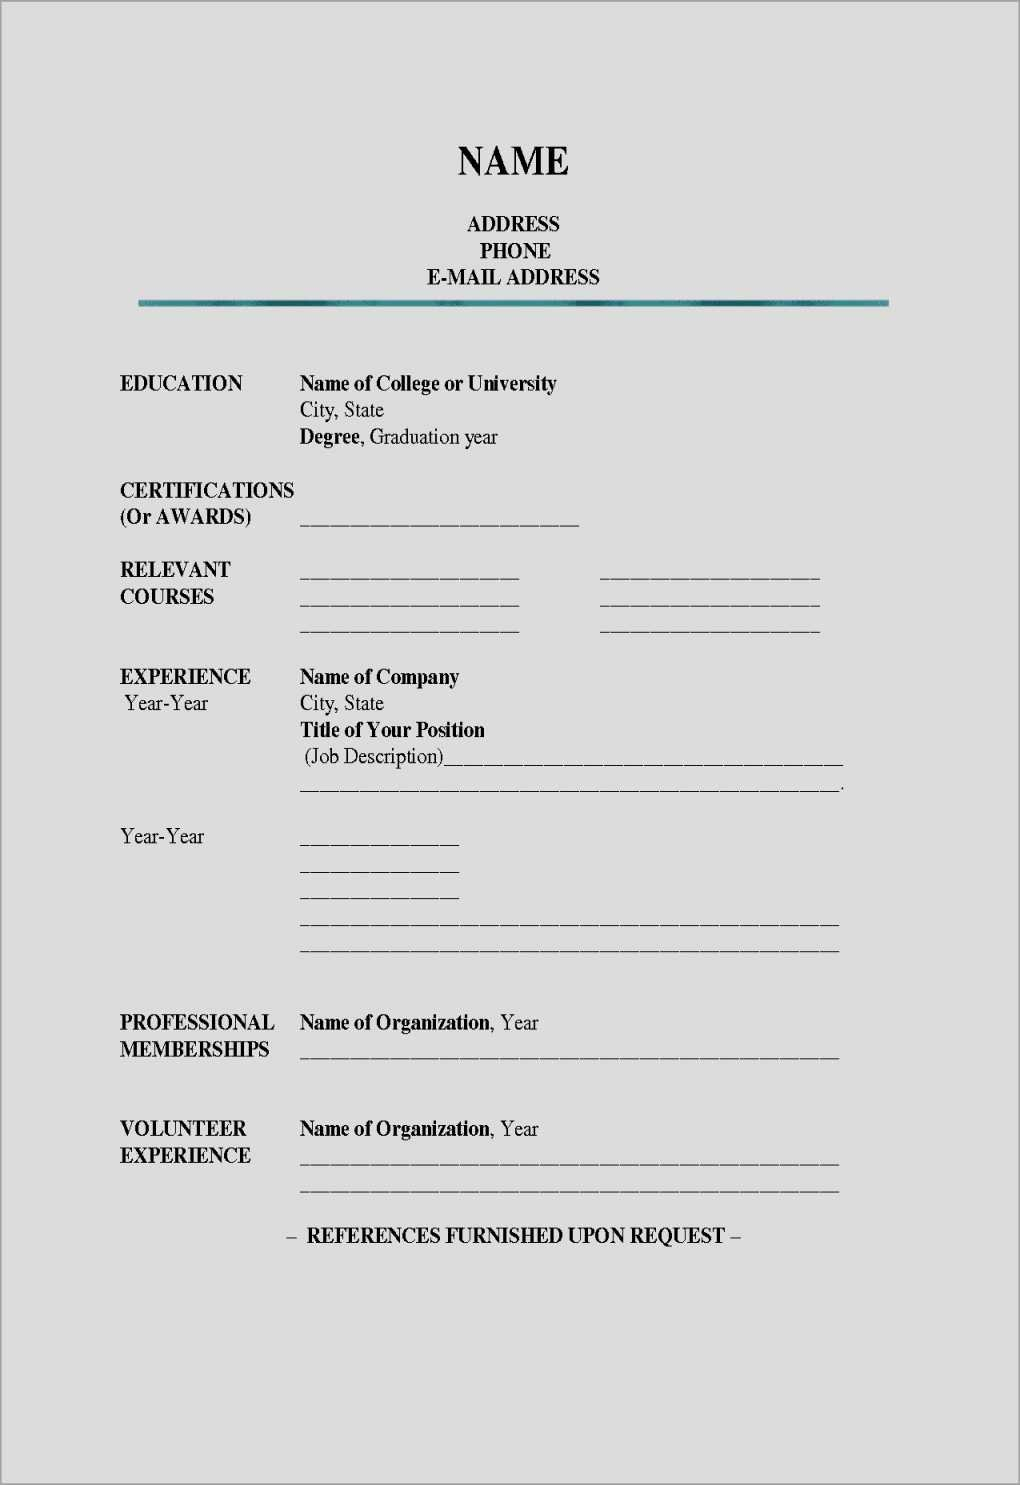 Resume Template To Fill In Fill In Resume Inspirational Fill In The Intended For Fill In The Blank Resume Worksheet